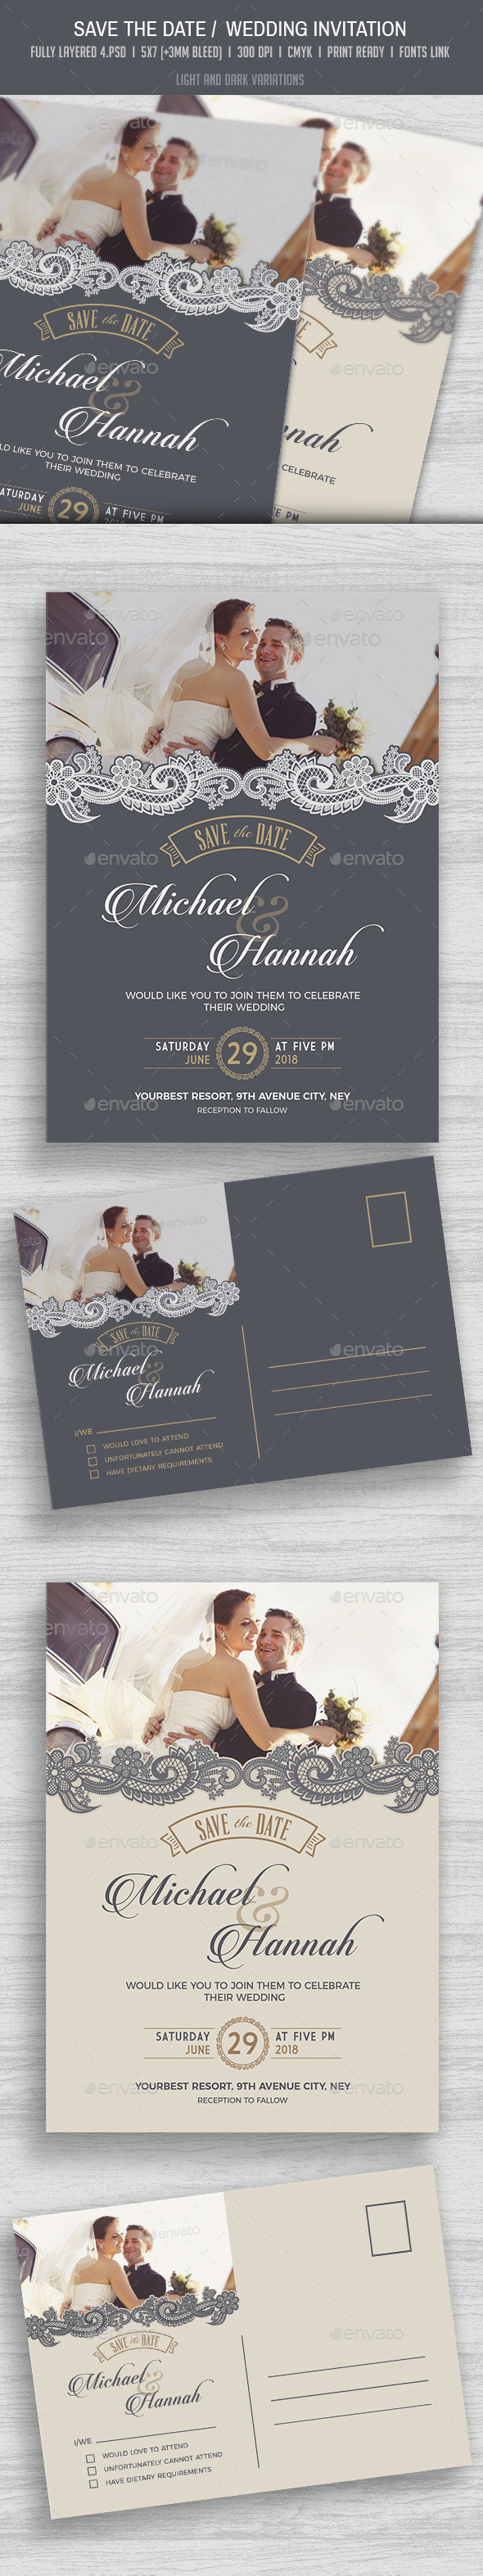 Save the Date / Wedding Invitation & RSVP - Weddings Cards & Invites